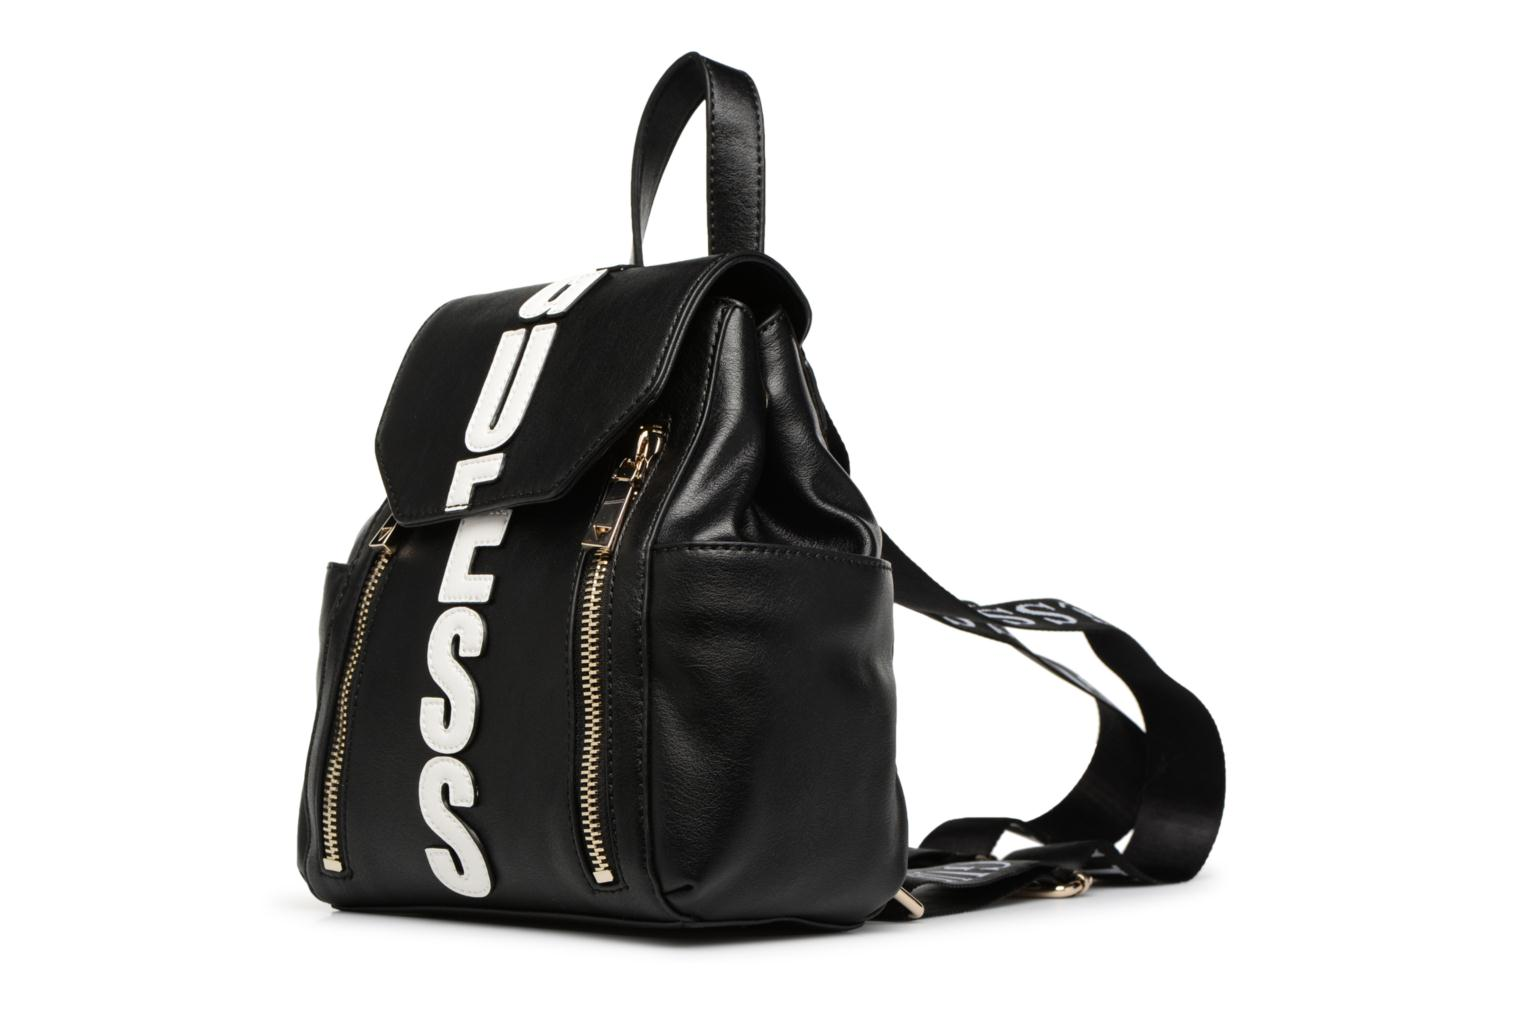 Urban Black Small Backpack Guess Sport 8wvmONn0